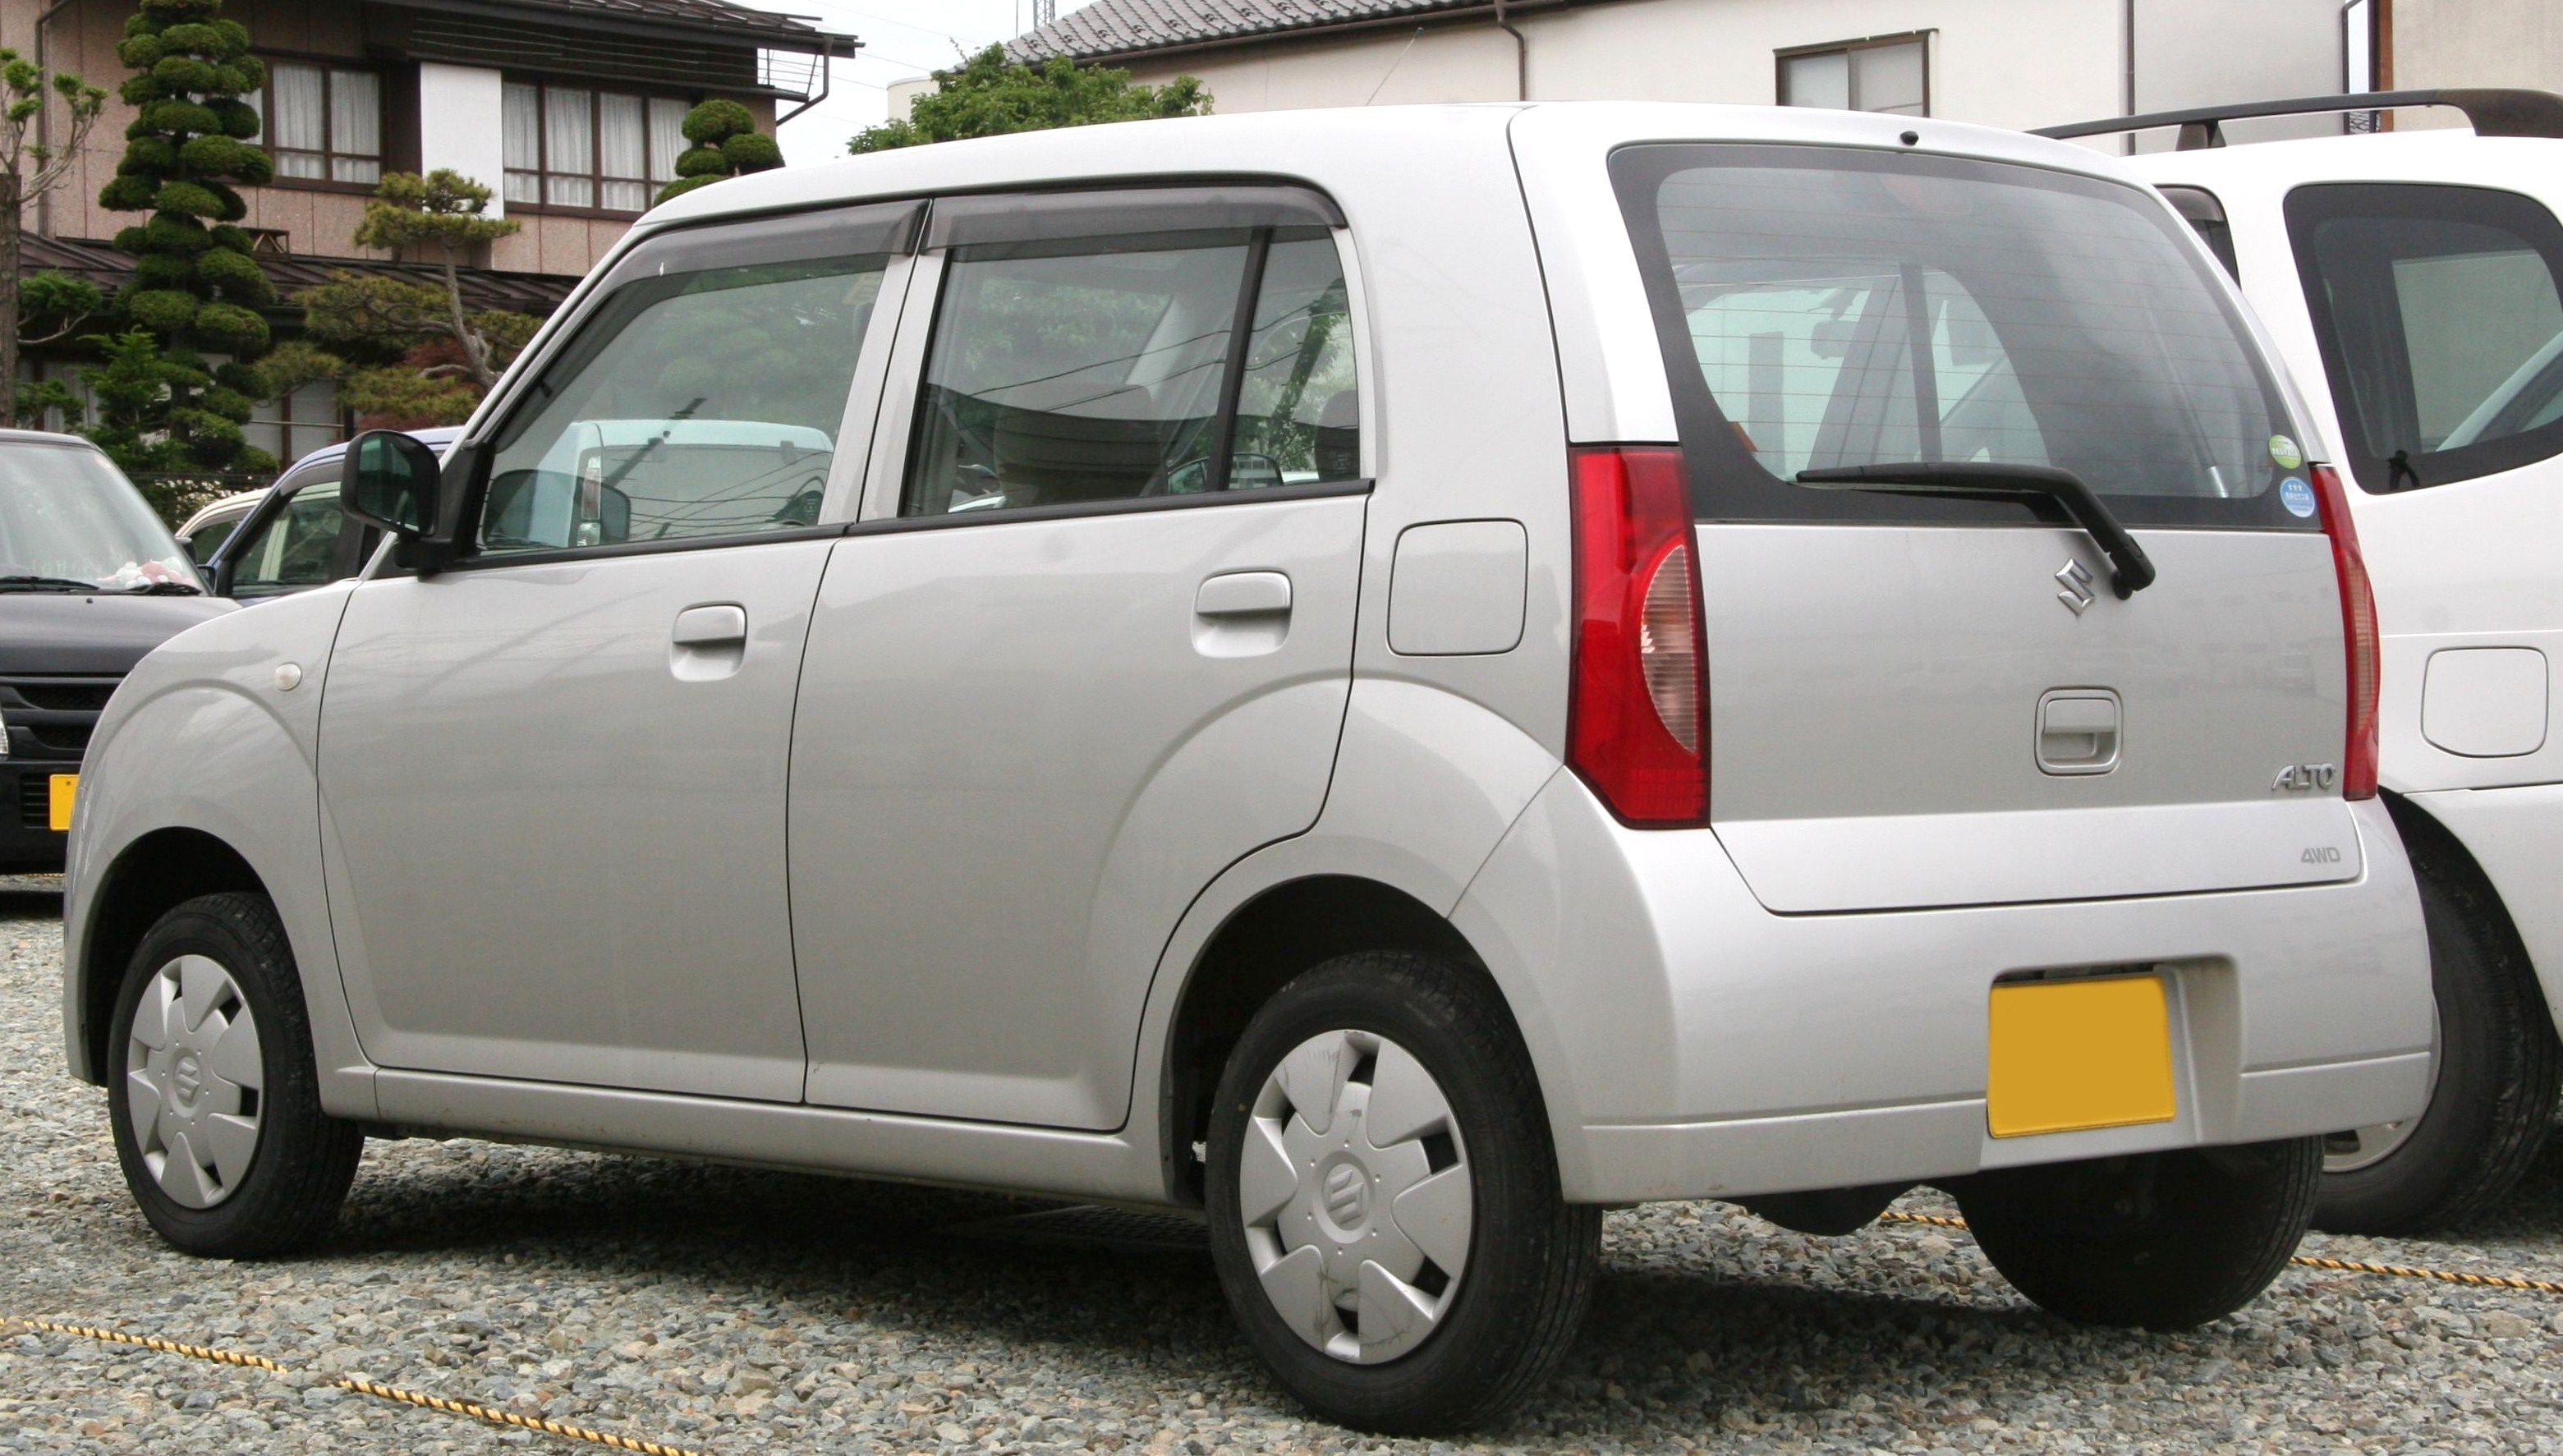 Suzuki Alto 2009 Exterior Rear Side View